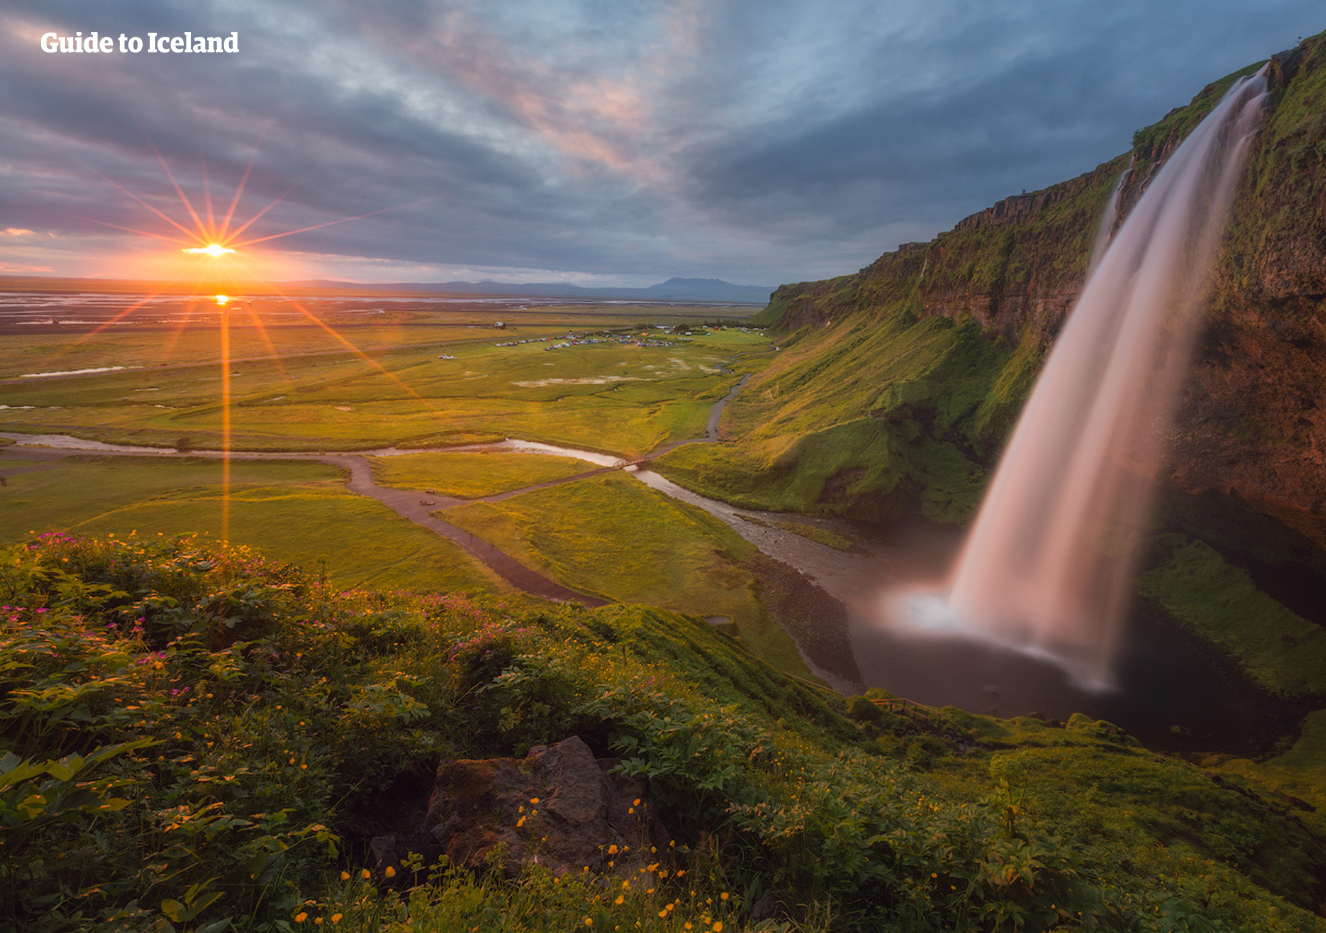 Standing behind the cascading water, photographers at Seljalandsfoss are able to gain a rarely seen perspective, ensuring fascinating shots of the landscape.